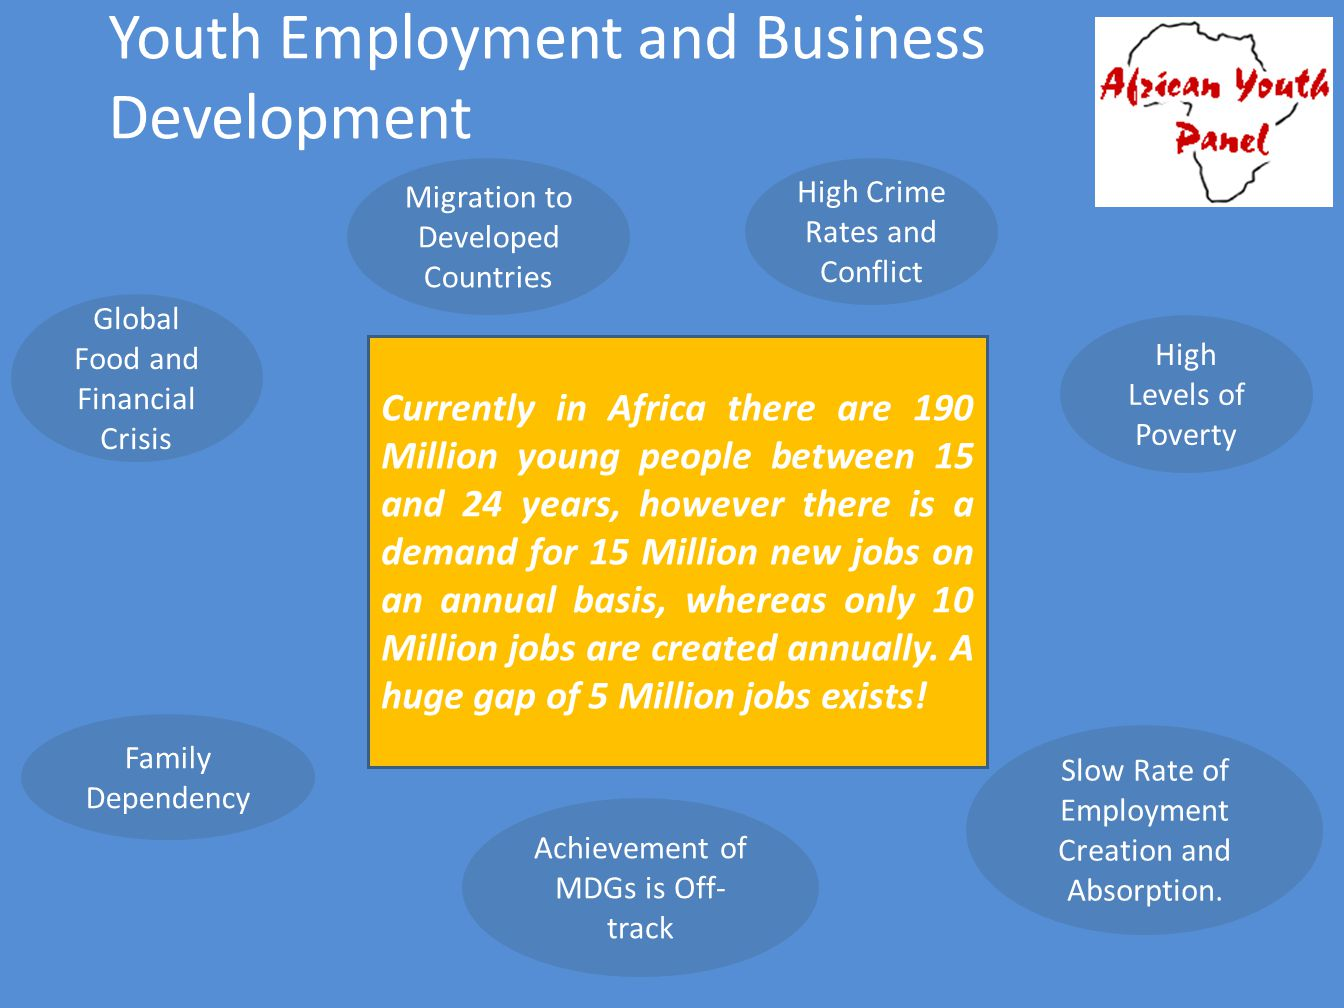 Youth Employment and Business Development